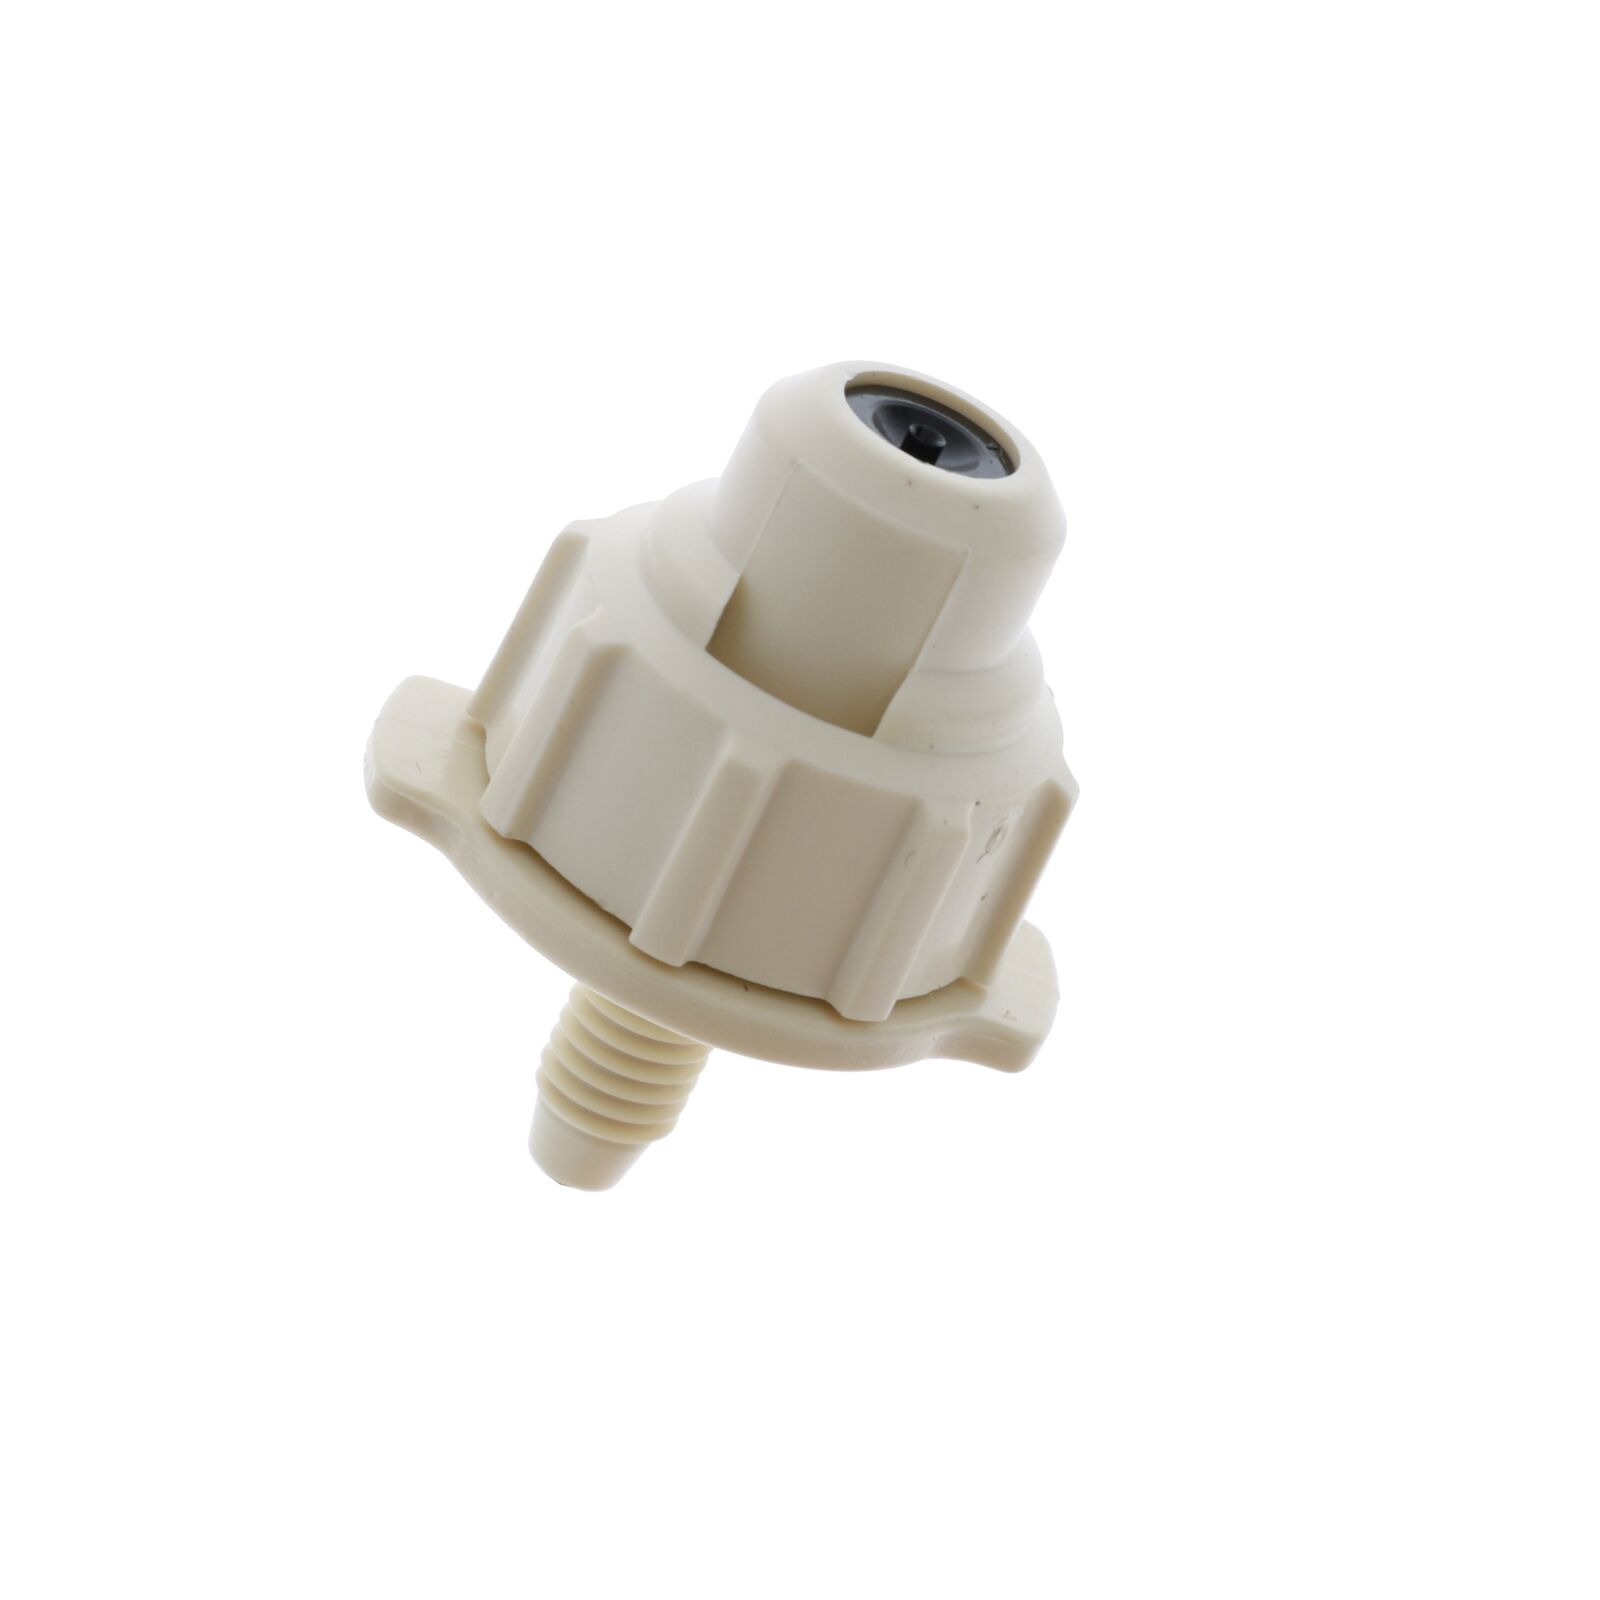 Dig 1 GPH Tan Misting Nozzle on 10/32 Threads-5 pack